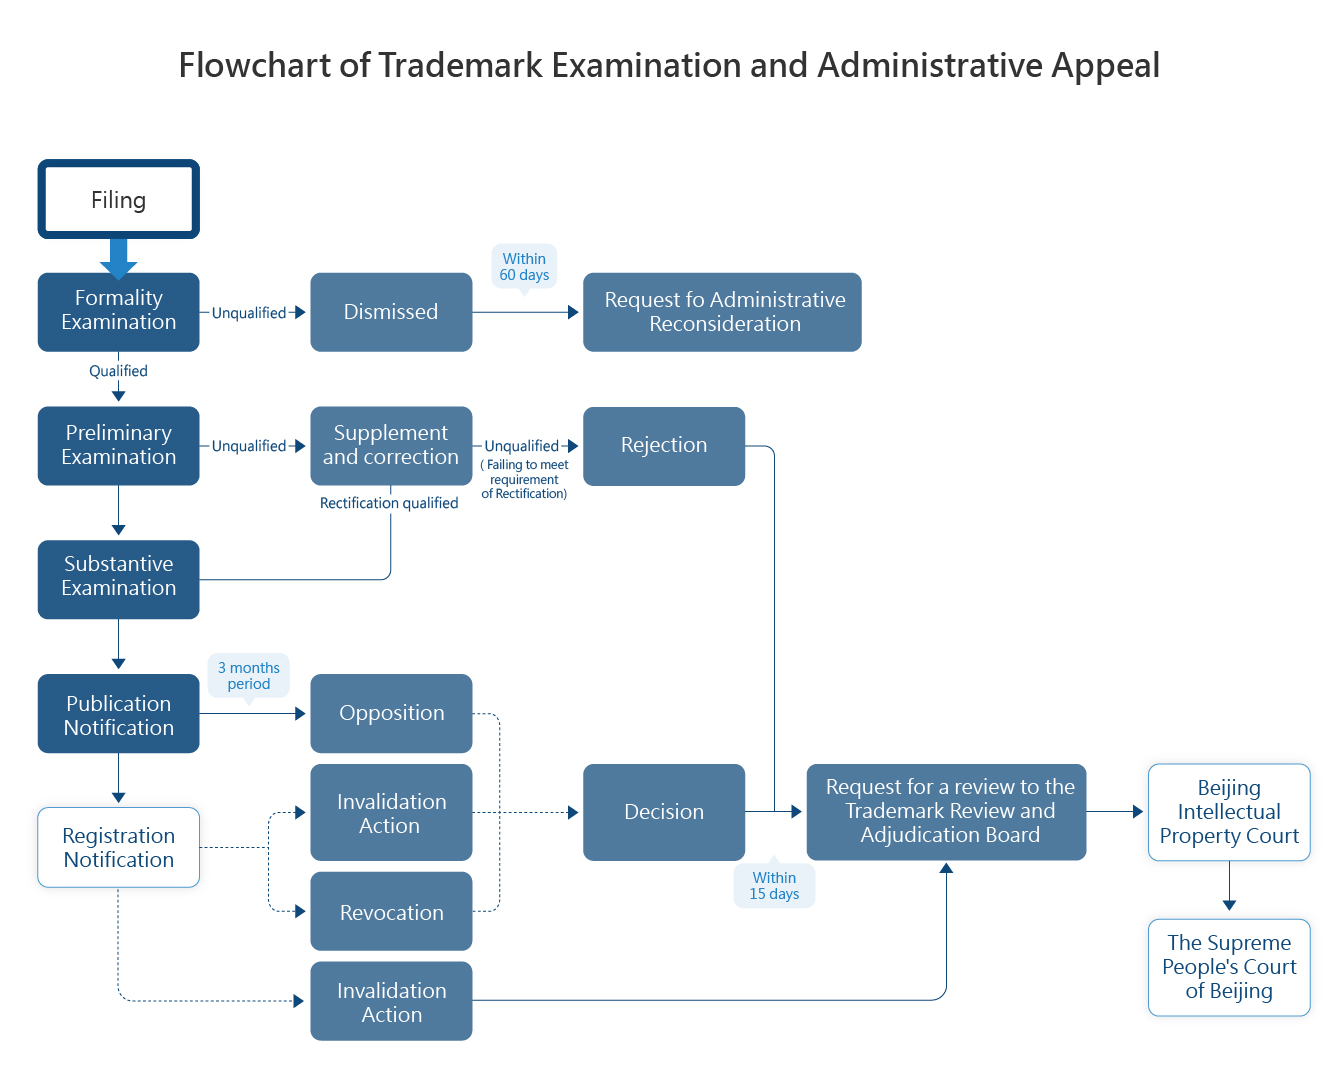 Flowchart of Trademark Examination and Administrative Appeal